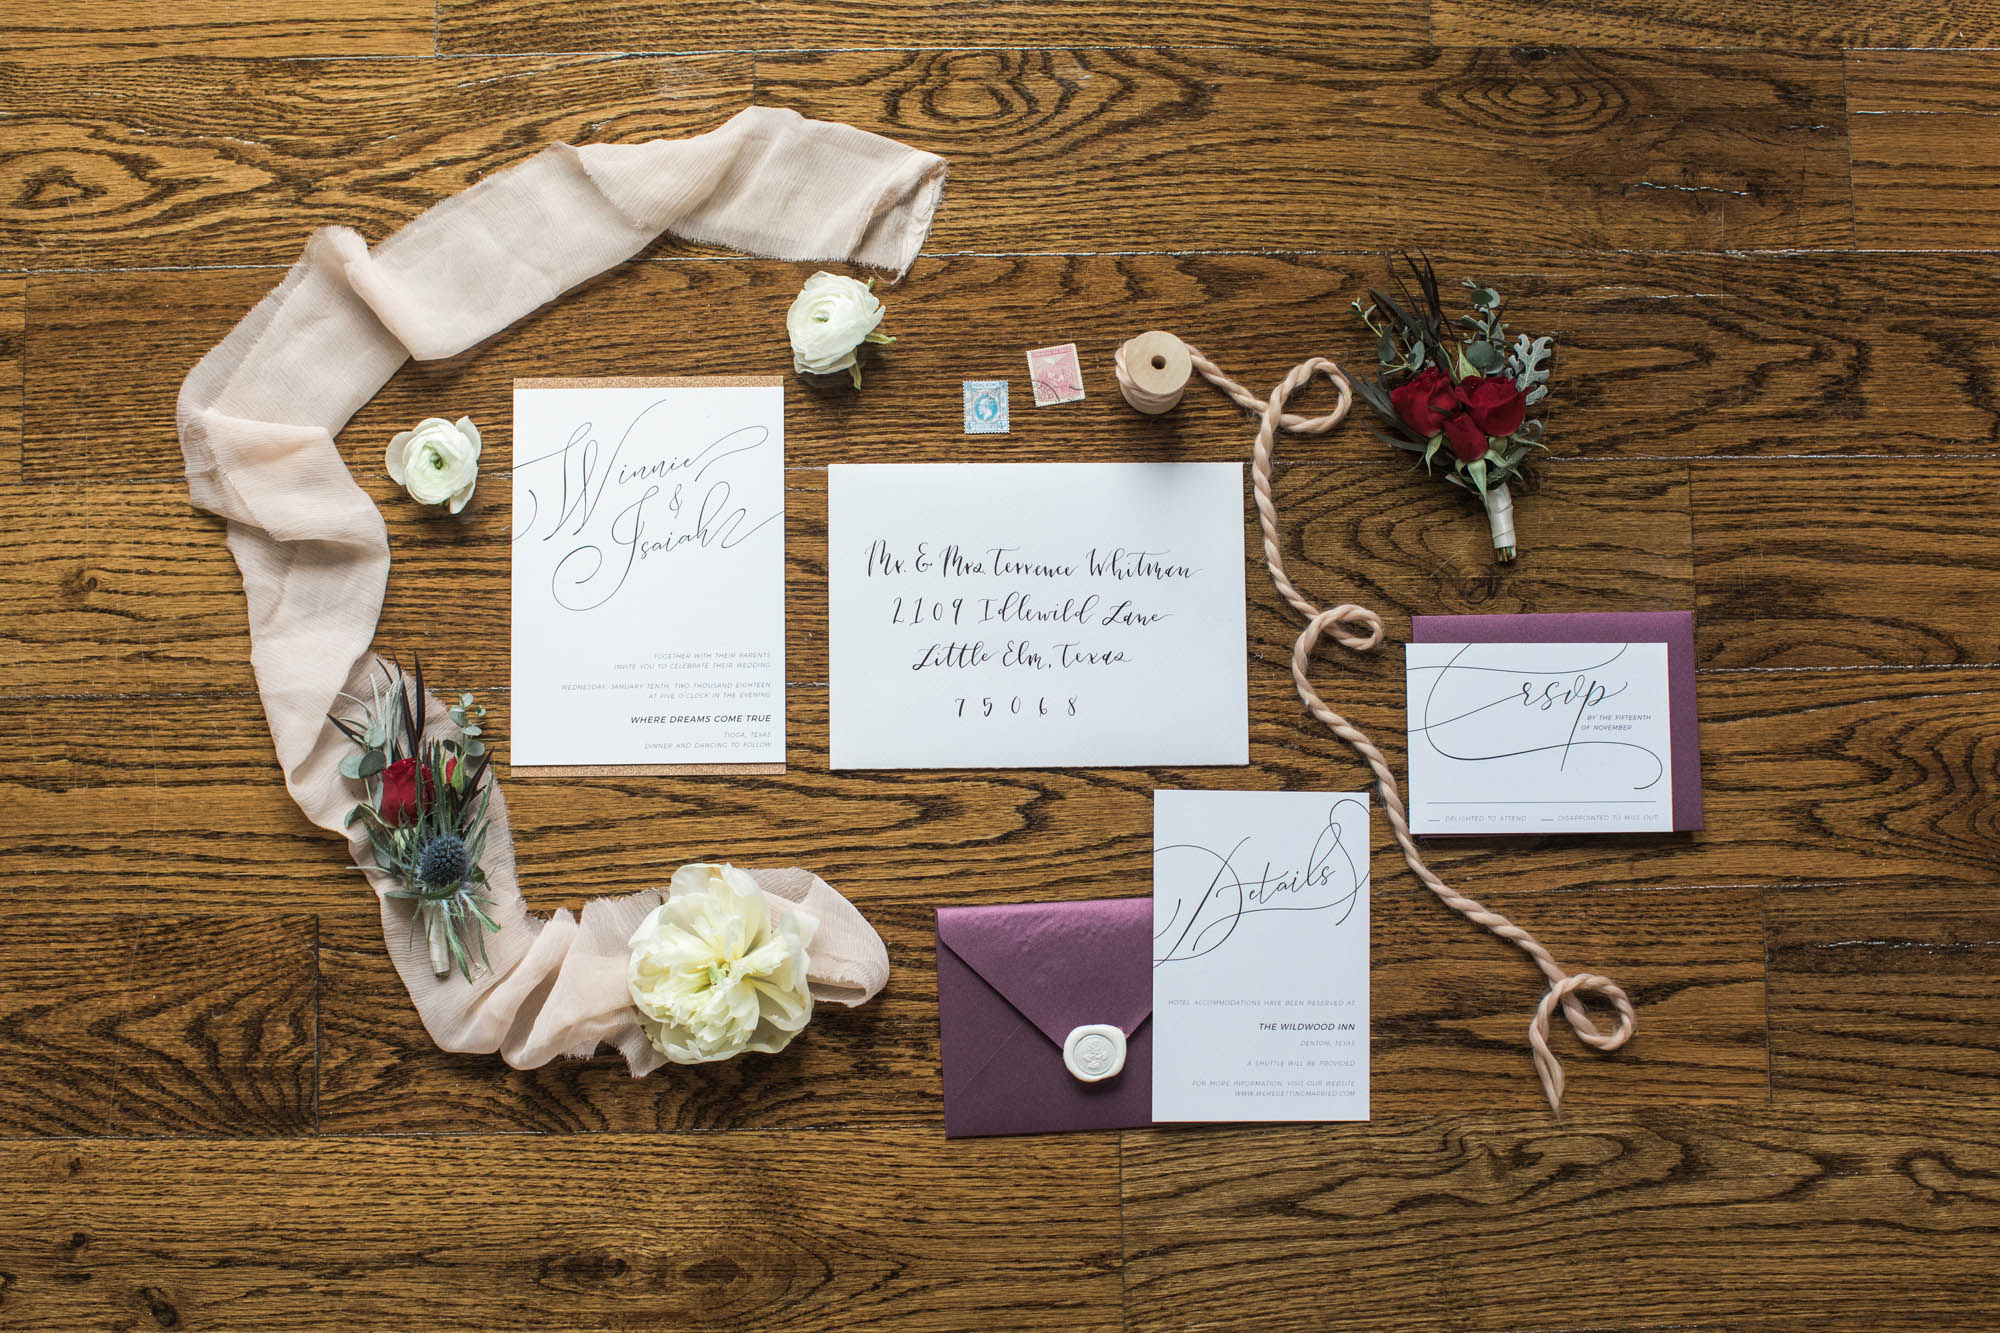 HandsofHollisWeddingInvitationsinDallasTexas28.jpg